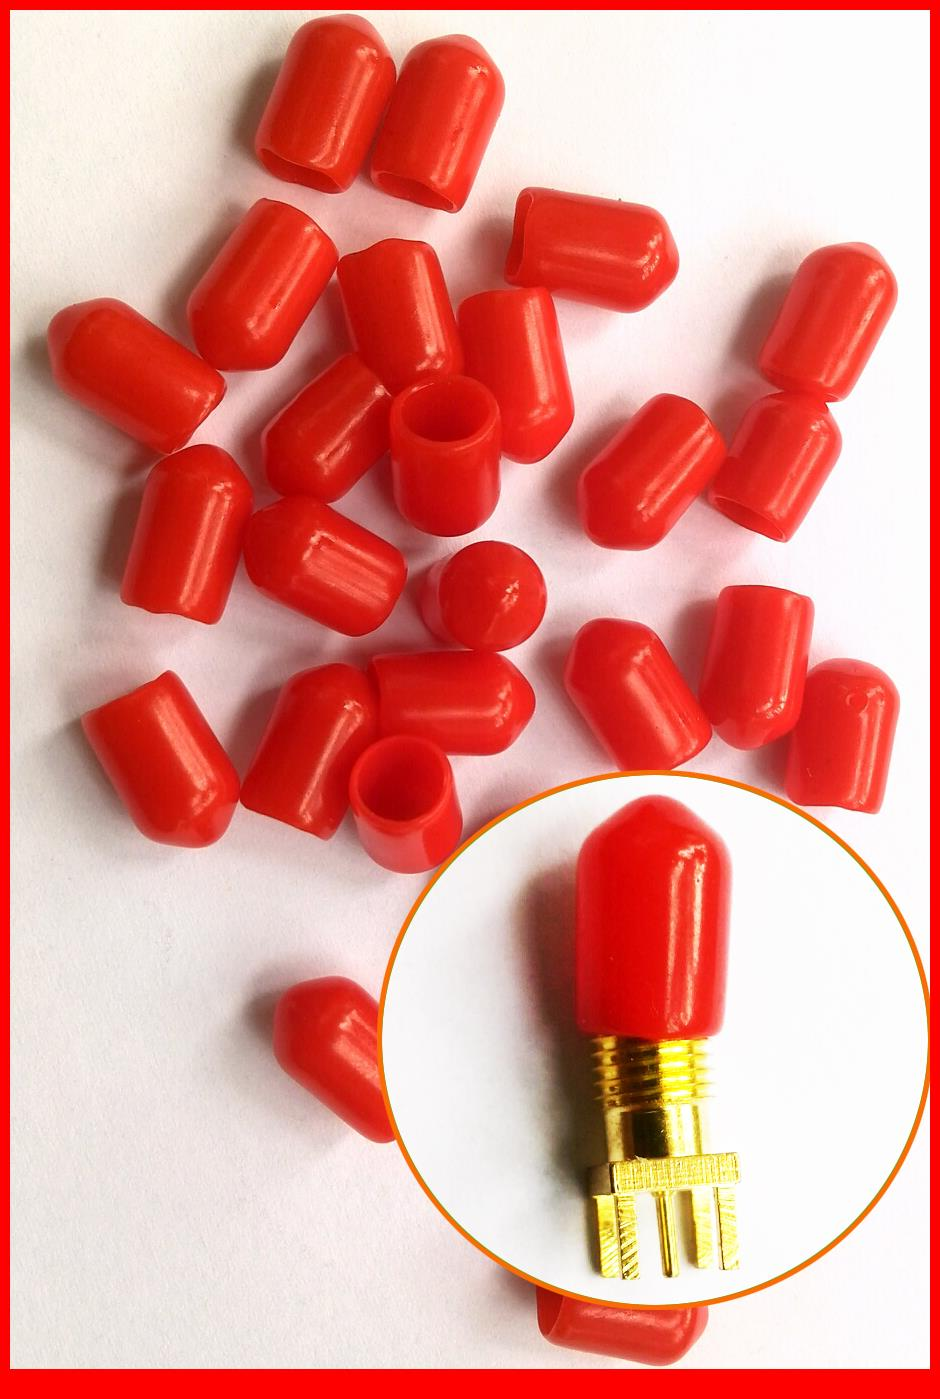 100PCS/lot Diameter of 6mm length 10mm Plastic covers Dust cap Red protective case for RF-SMA Female connector(China (Mainland))